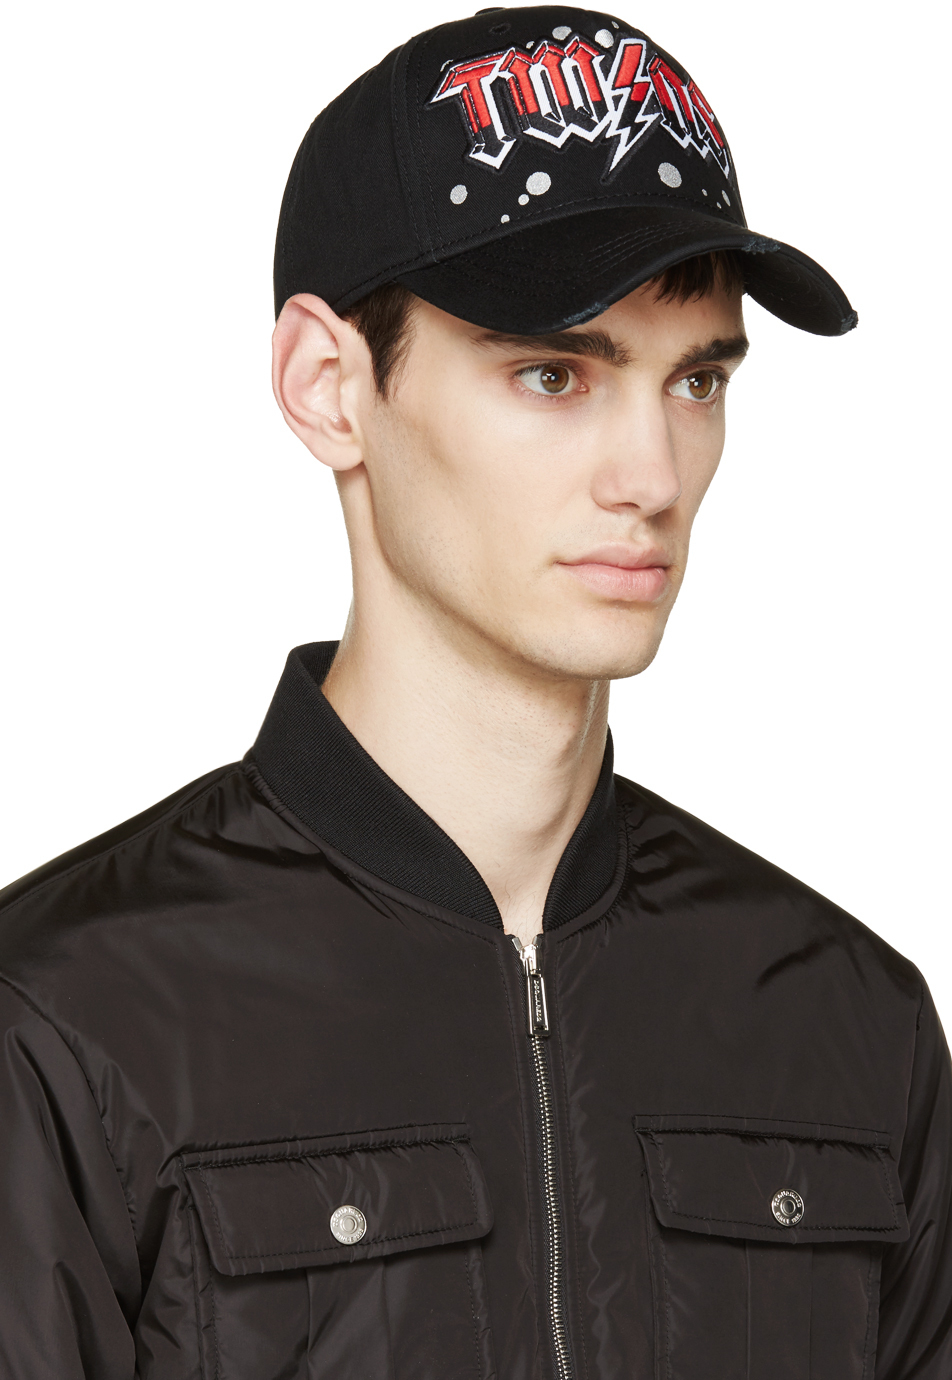 Lyst - DSquared² Black Twins Cap in Black for Men a6f1e9e3d61